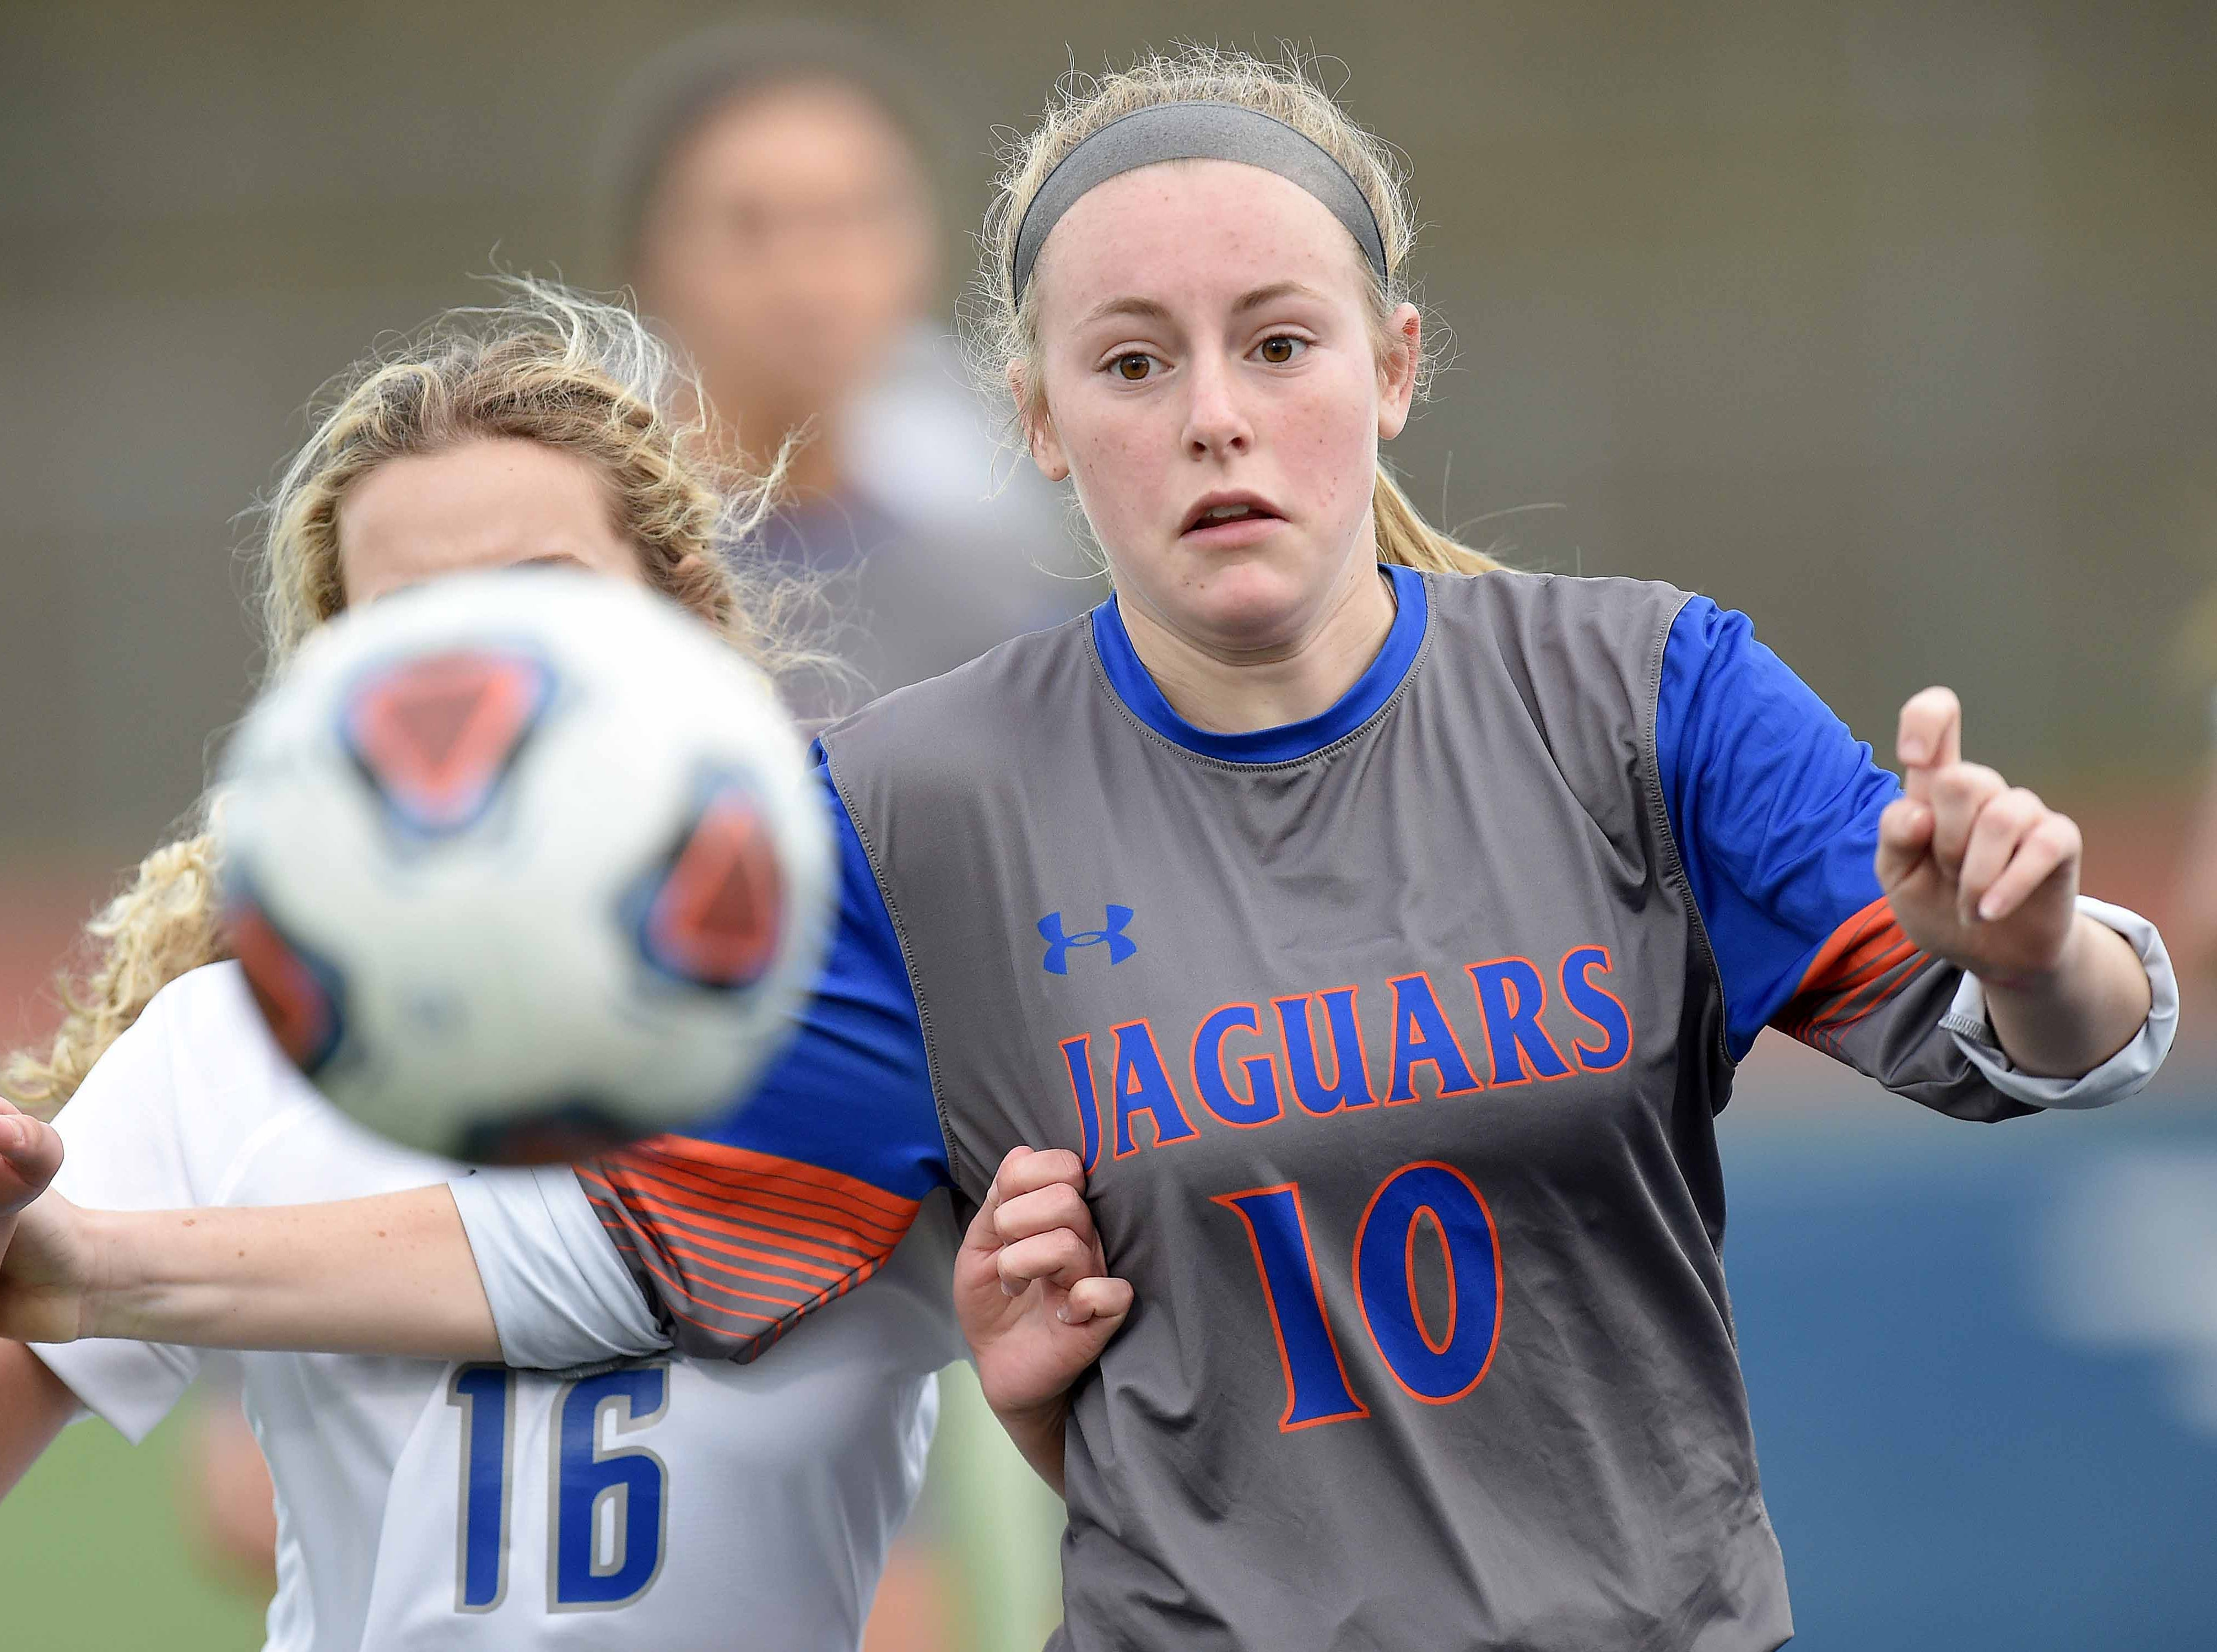 Madison Central's Lane Taylor (10) and Ocean Spring's Sydney Johnson (16) vie for a throw in at the Class 6A state championship in the MHSAA BlueCross Blue Shield of Mississippi Soccer Classic on Saturday, February 9, 2019, at Ridgeland High School in Ridgeland, Miss.